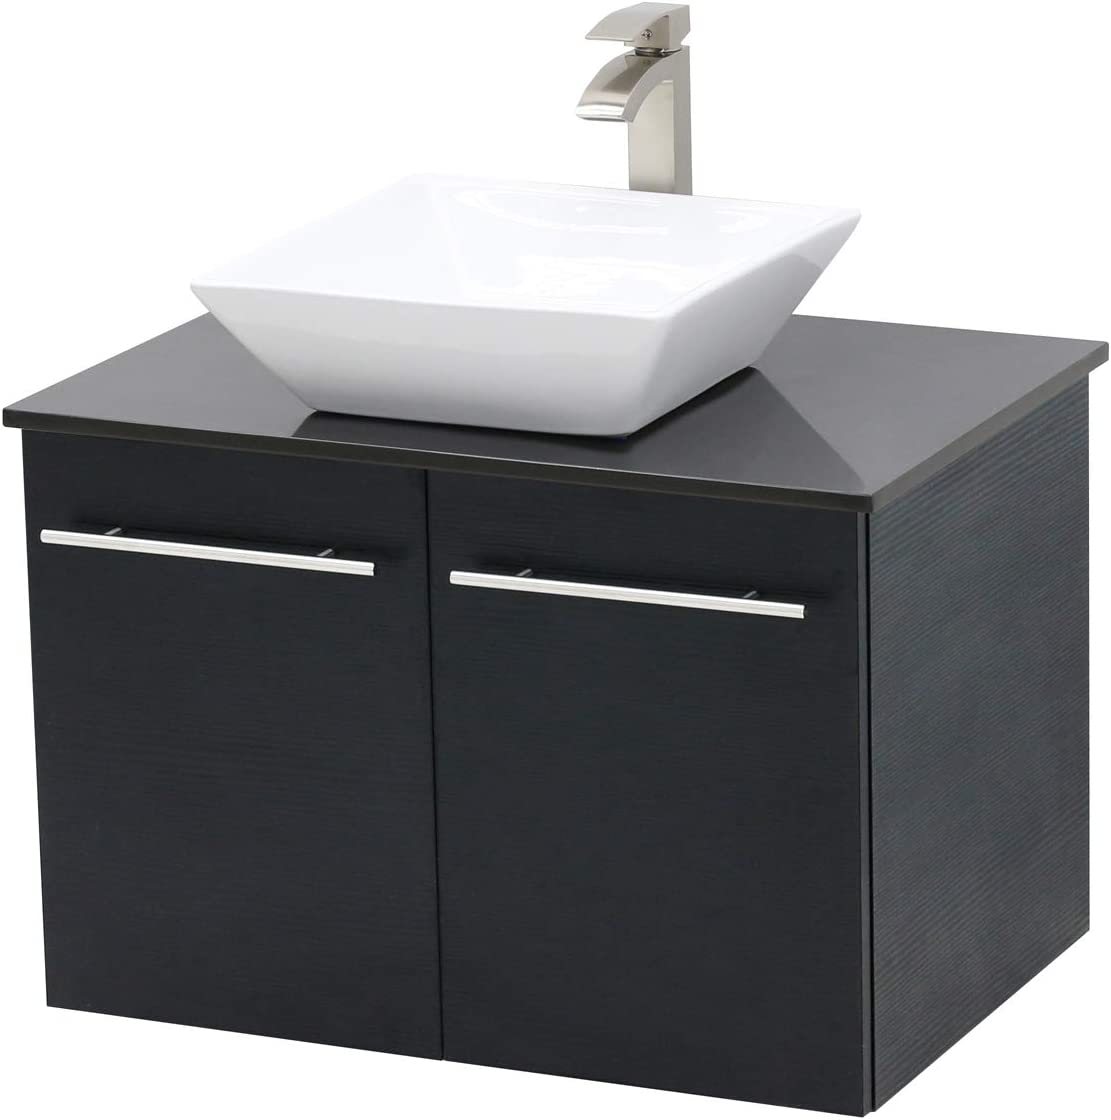 WindBay Wall Mount Floating Bathroom Vanity Sink Set. Black Vanity, Black Flat Stone Countertop Ceramic Sink – 24